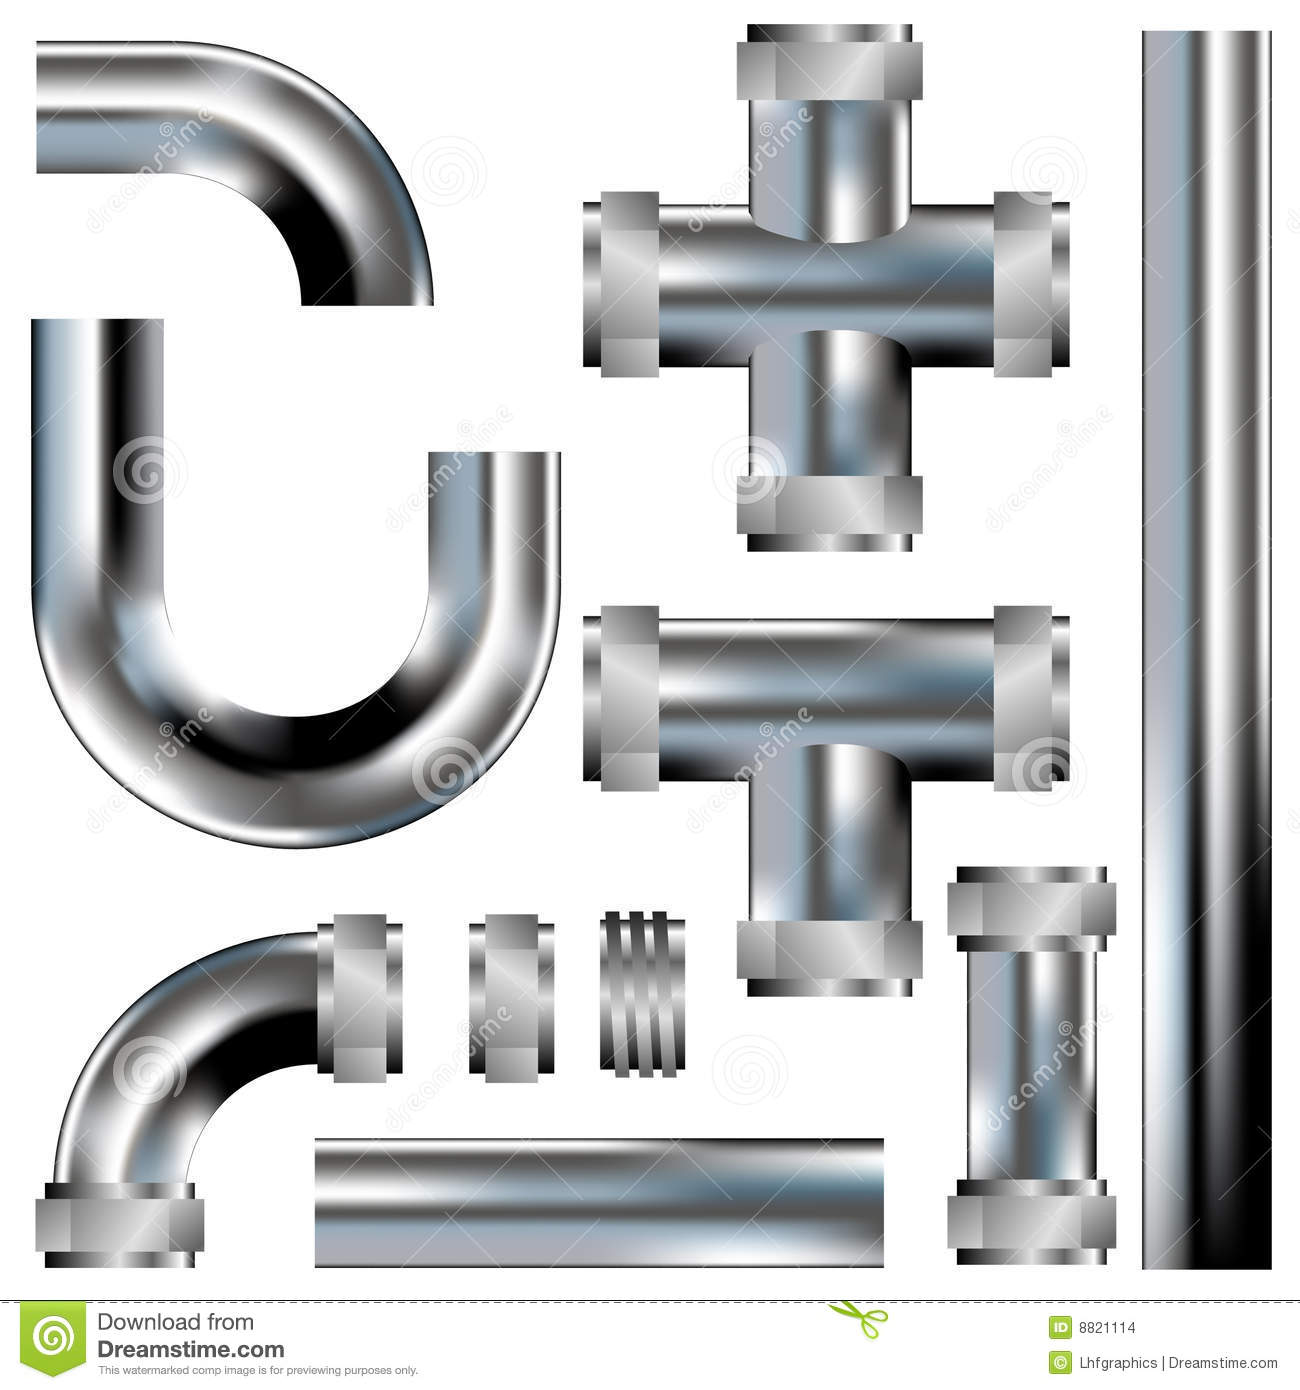 Plumbing pipes stock vector illustration of sink home for What pipes to use for plumbing